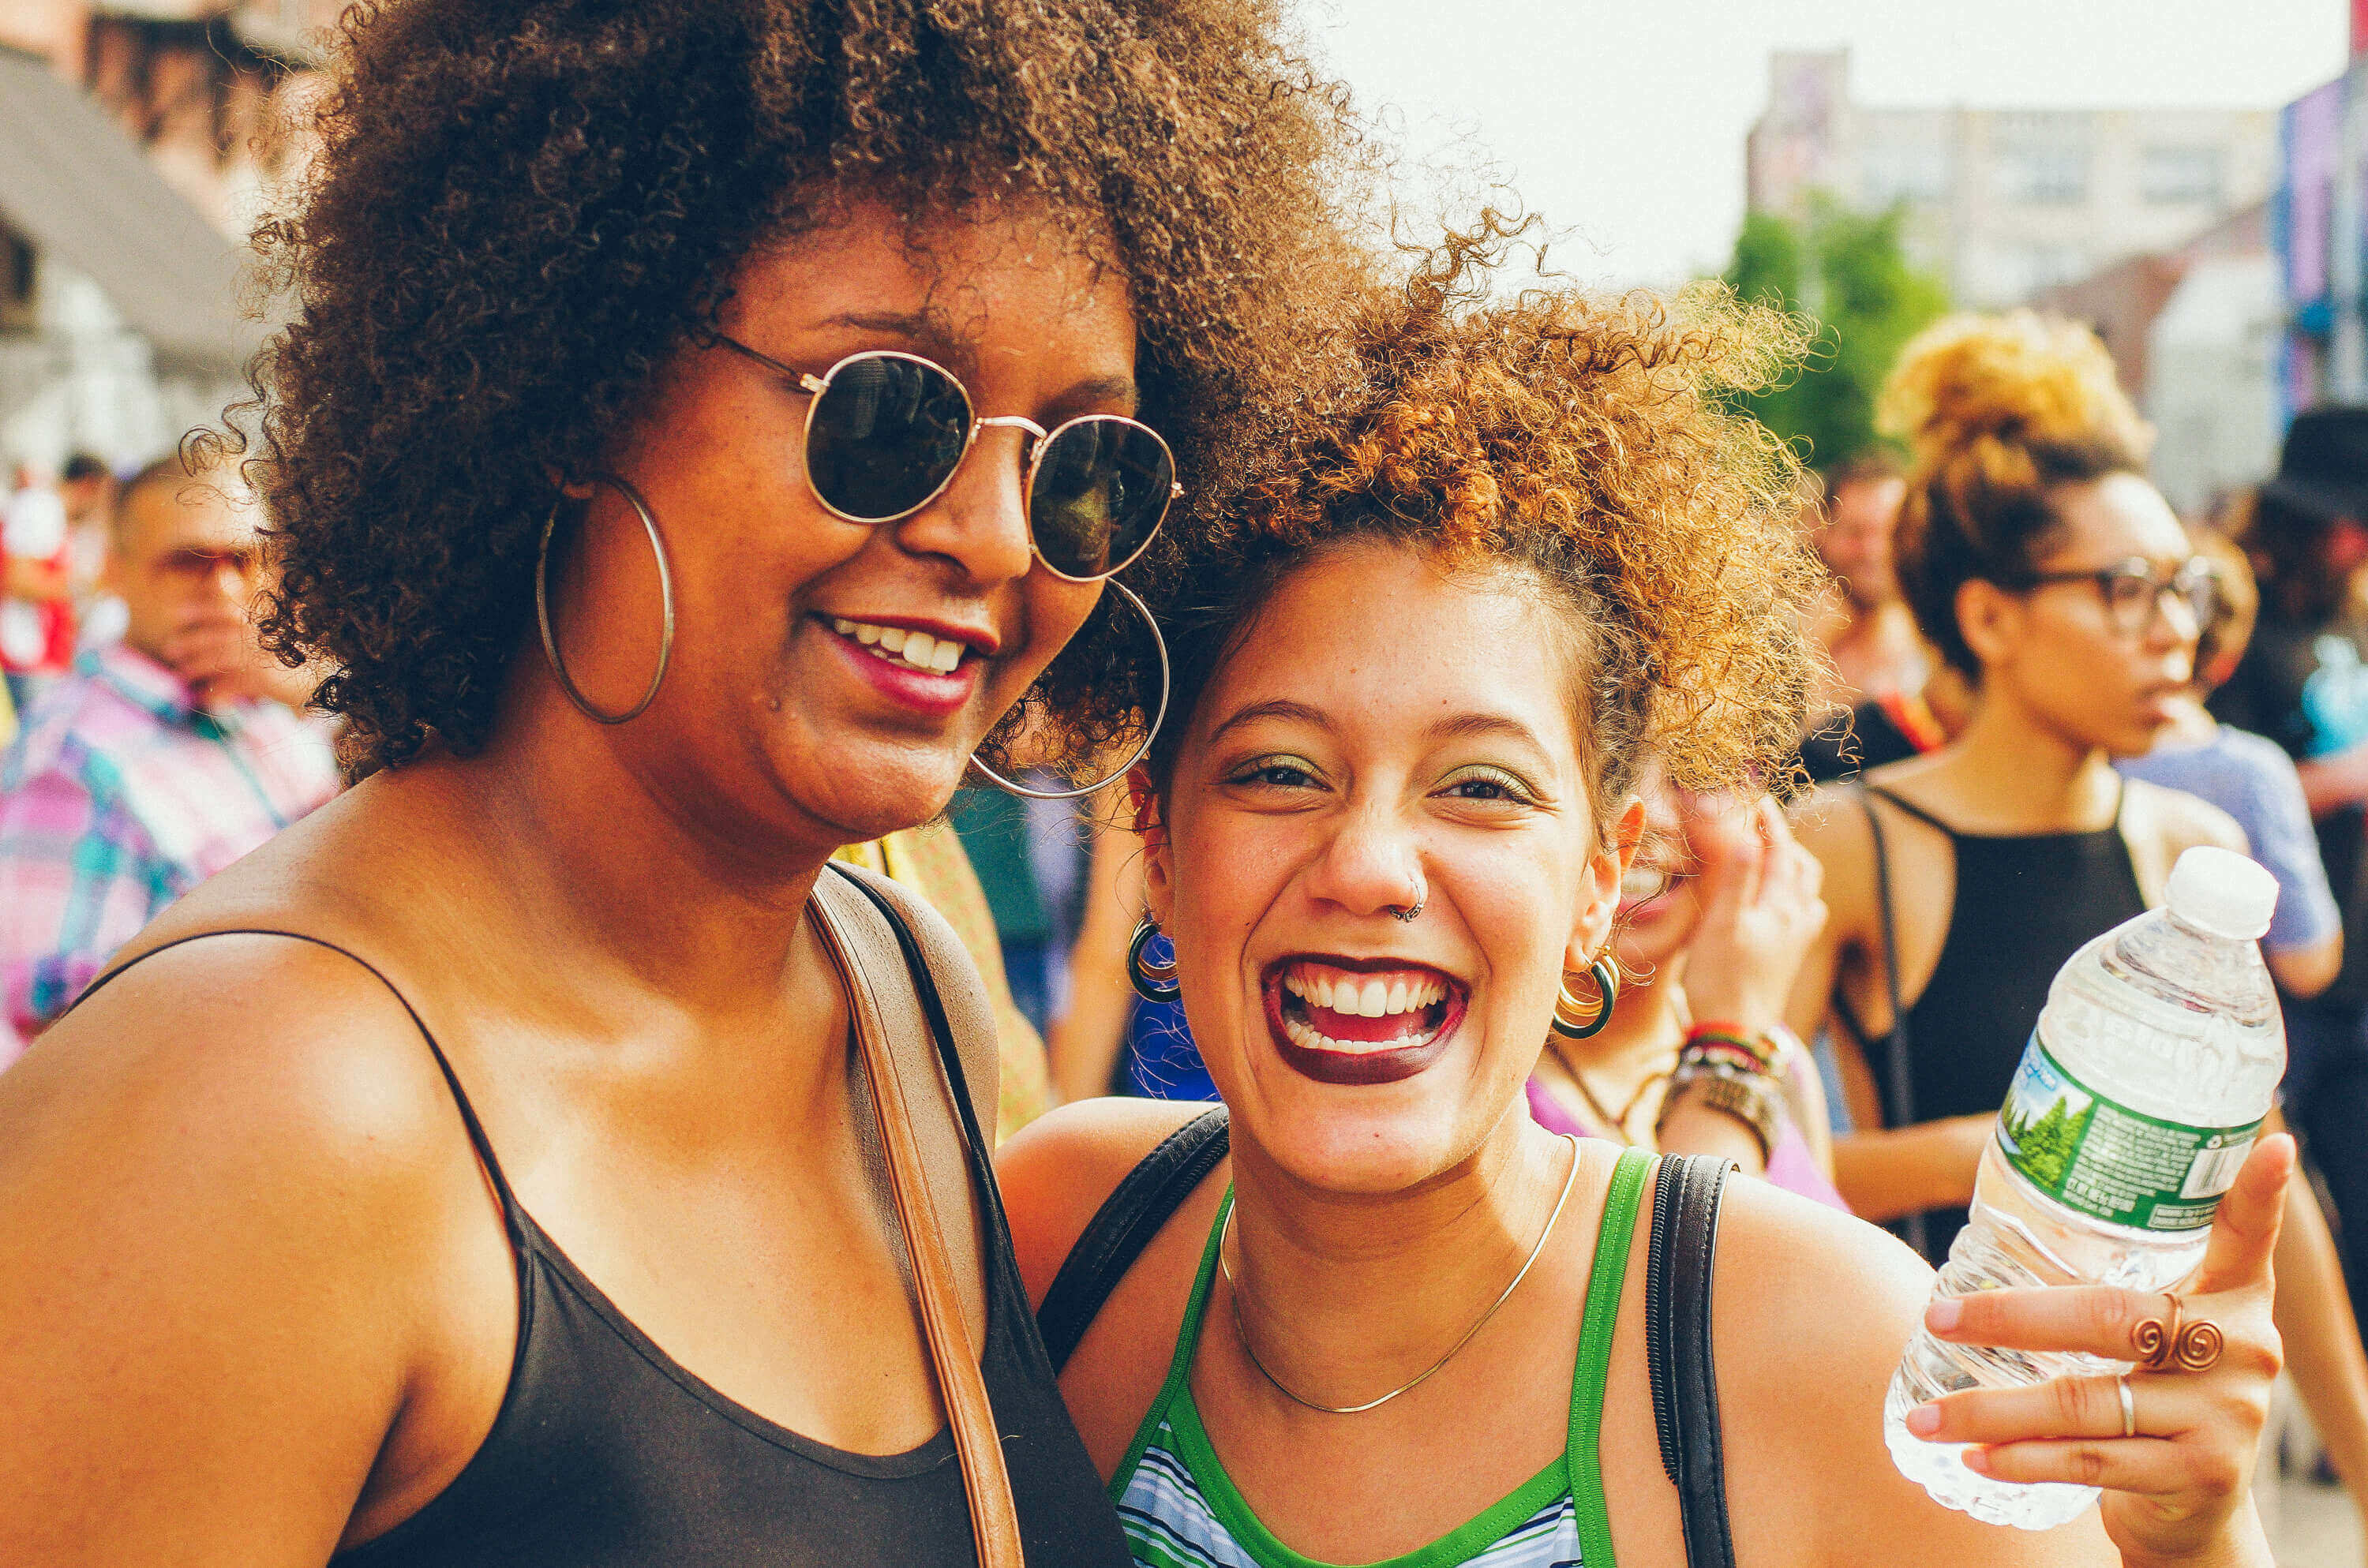 Friends smiling on the Bushwick Collective Block Party 2016